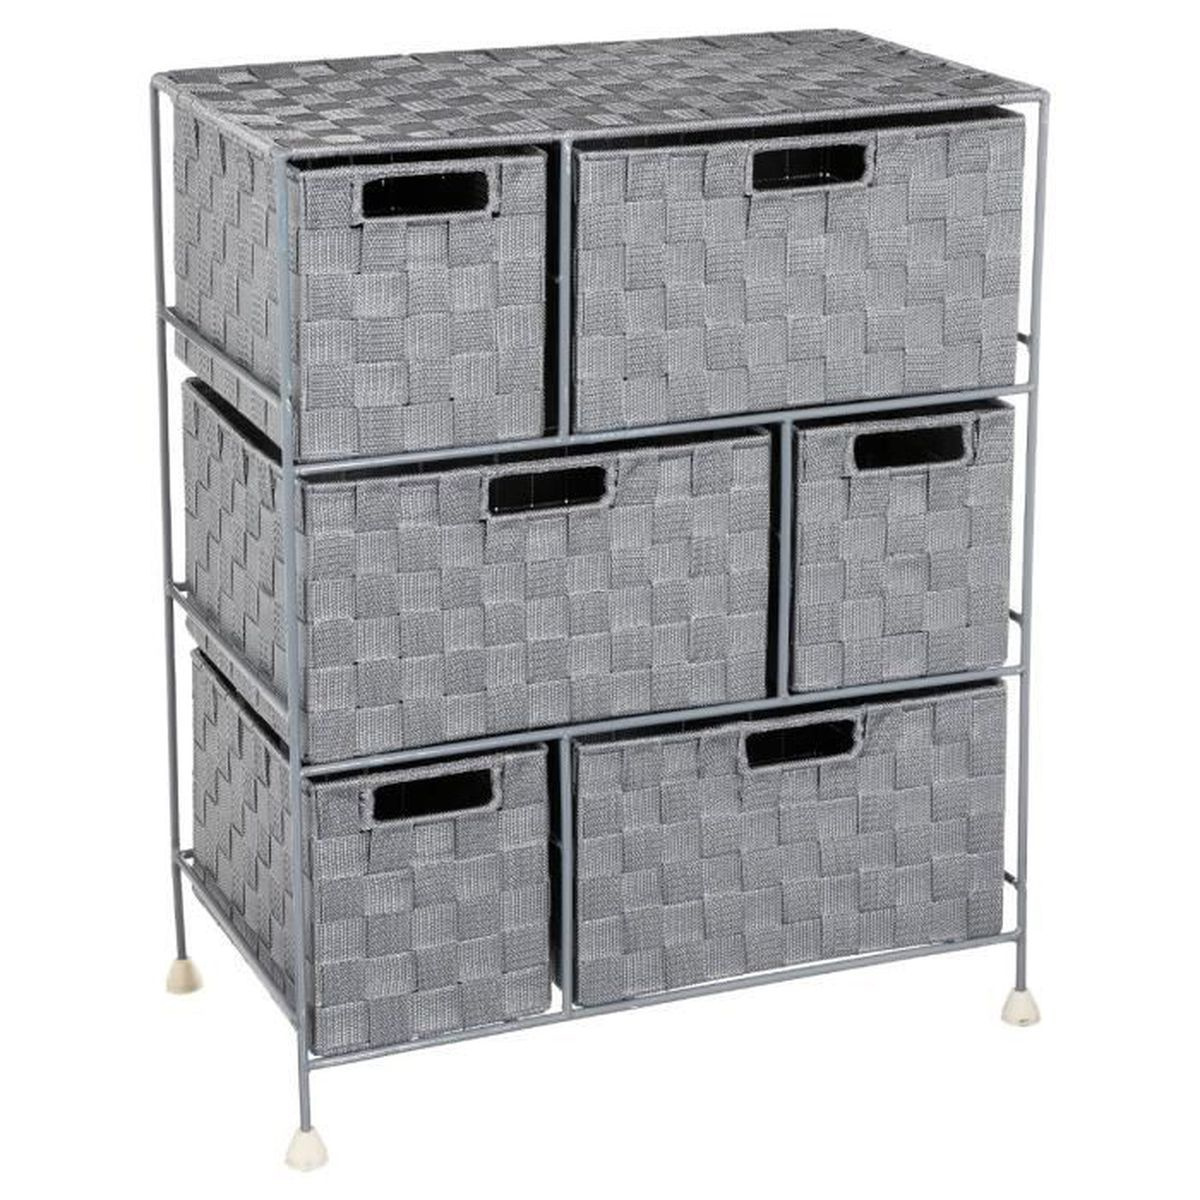 meuble de rangement 6 tiroirs design et pratique coloris gris achat vente petit meuble. Black Bedroom Furniture Sets. Home Design Ideas